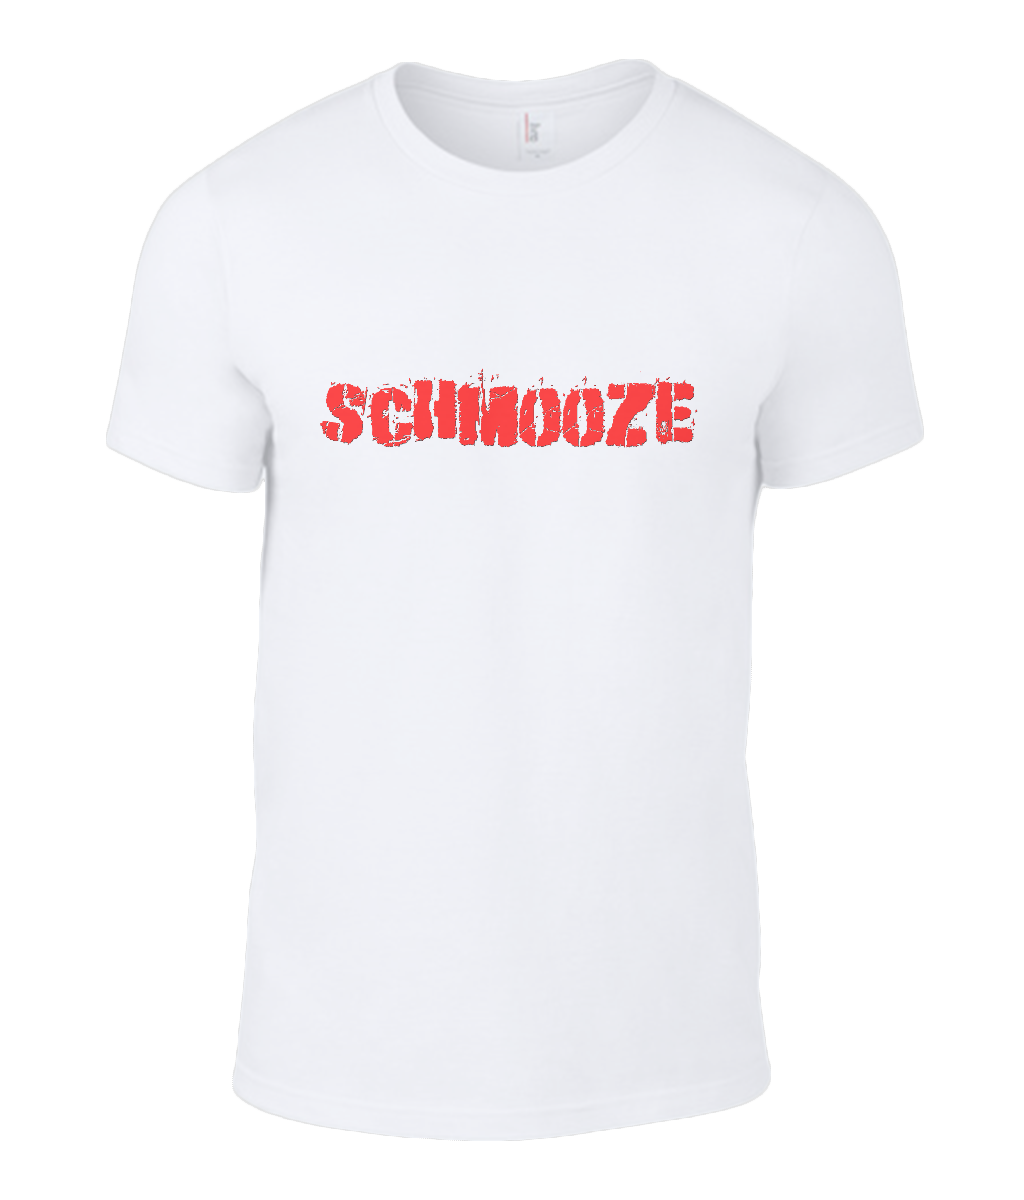 Round Neck T-Shirt - Schmooze - Lokshen Pudding UK - White